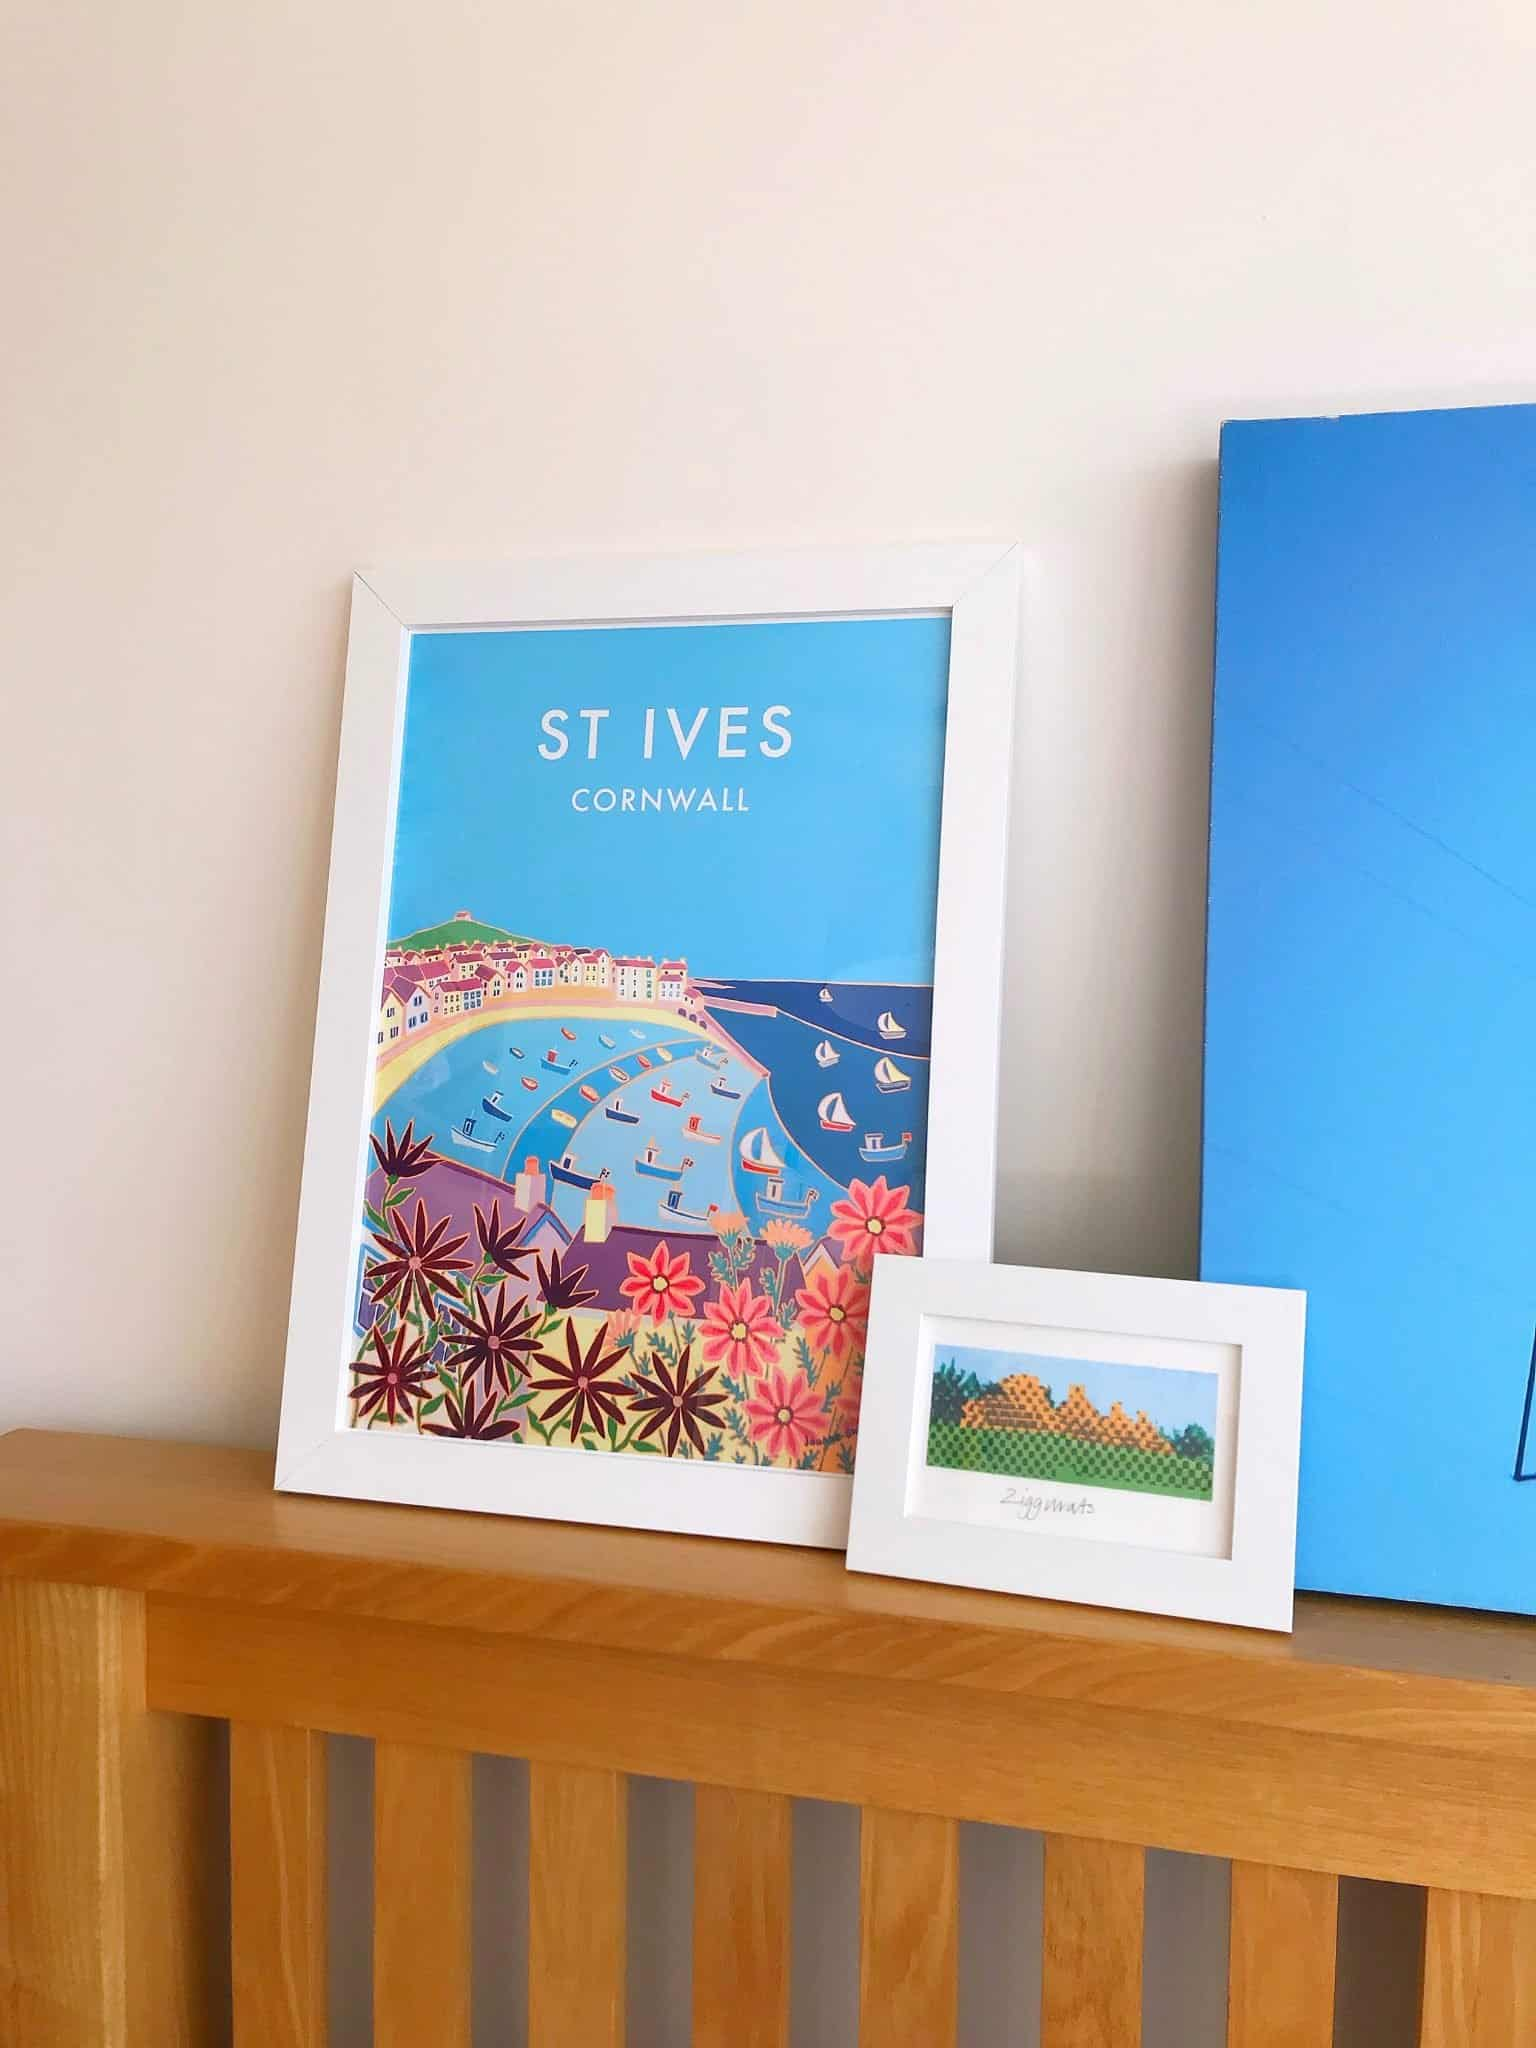 Bringing happy memories of Cornwall into our home